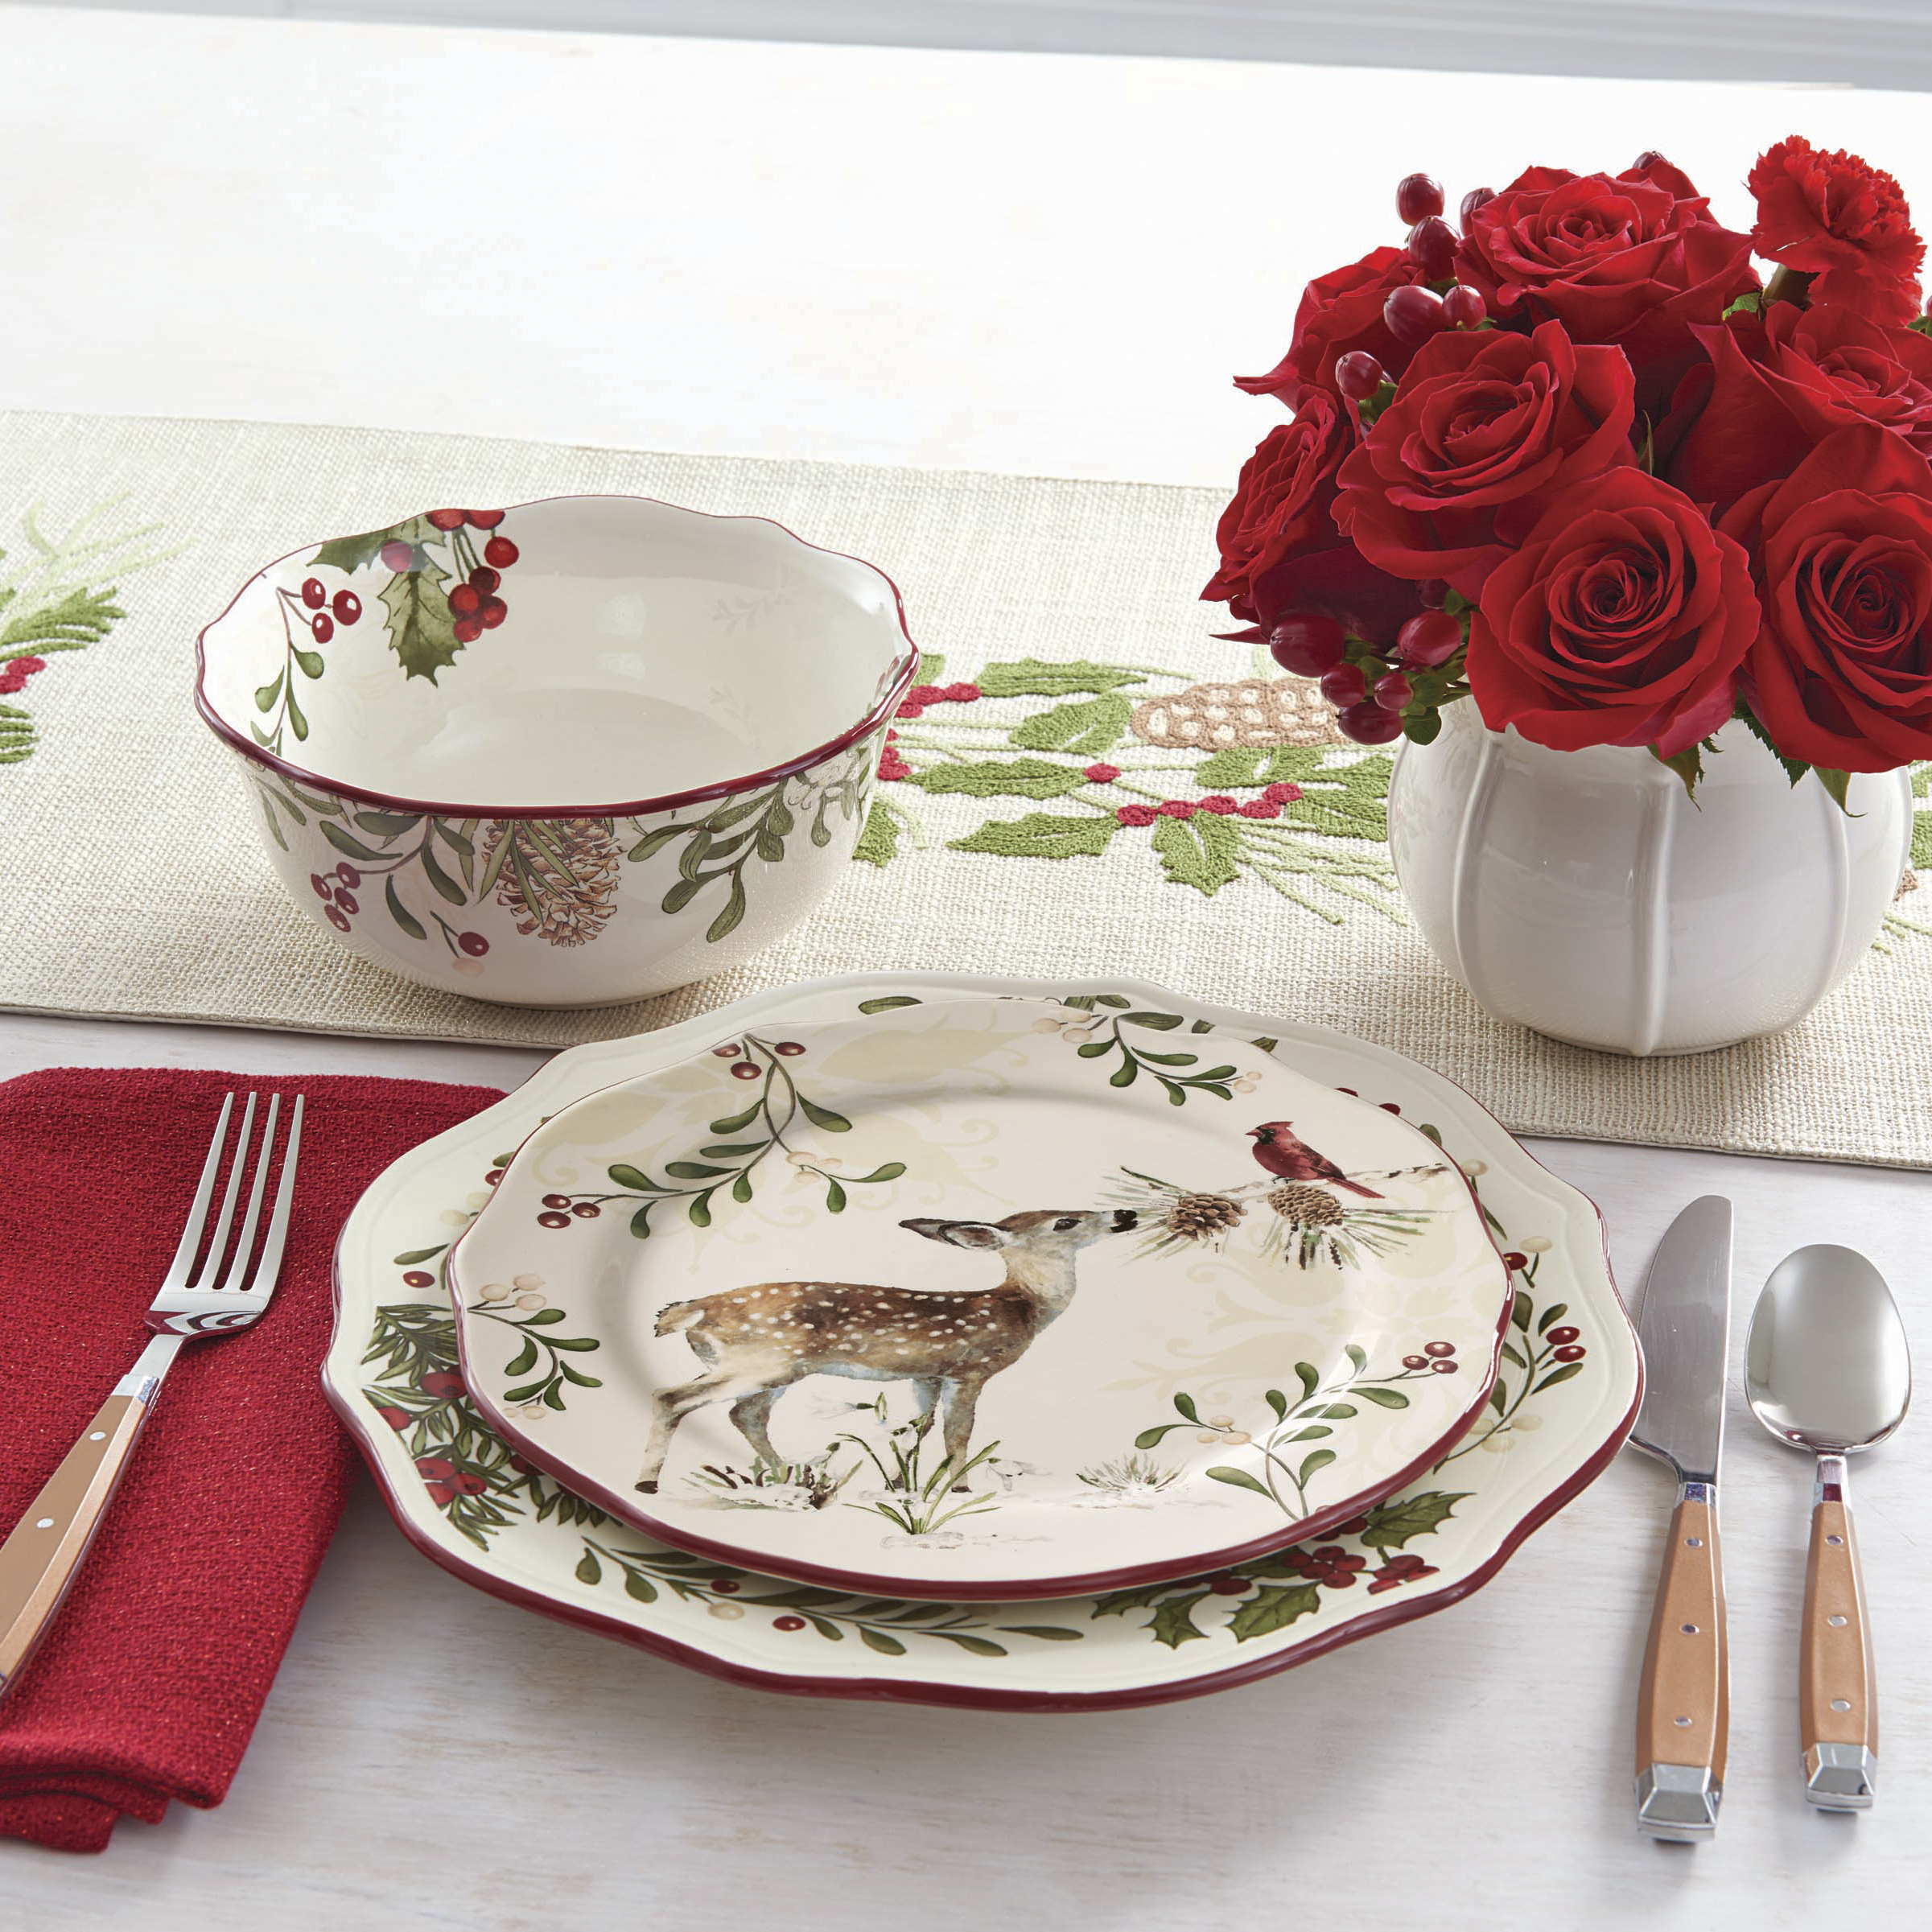 Better Homes and Gardens 16-Piece Heritage Dinnerware Set & Better Homes and Gardens 16-Piece Heritage Dinnerware Set - Walmart.com